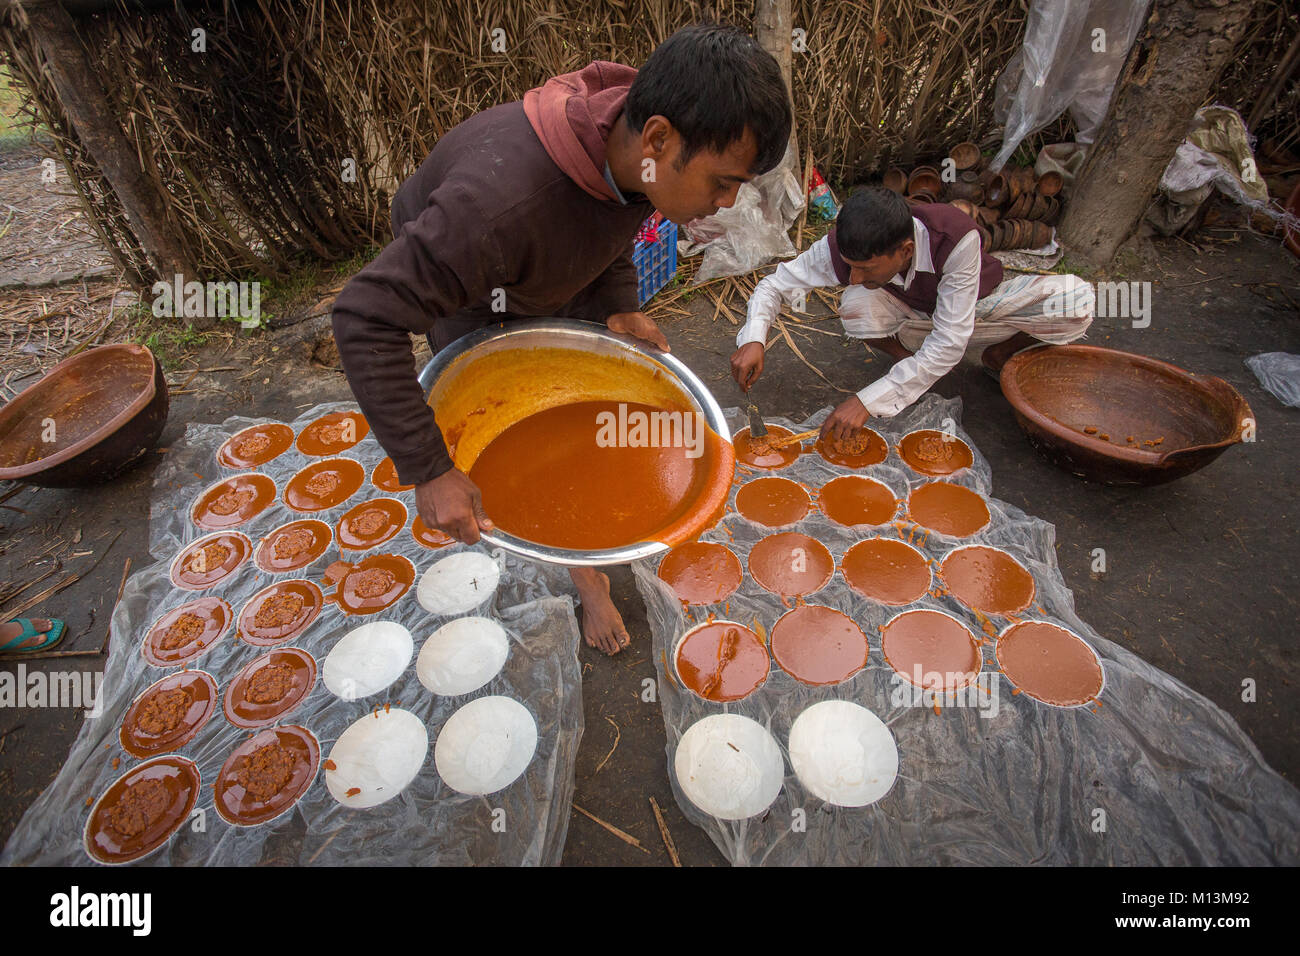 Boiled hot Date Palm Tree juice is being poured into the container at Iswardi, Bangladesh. - Stock Image